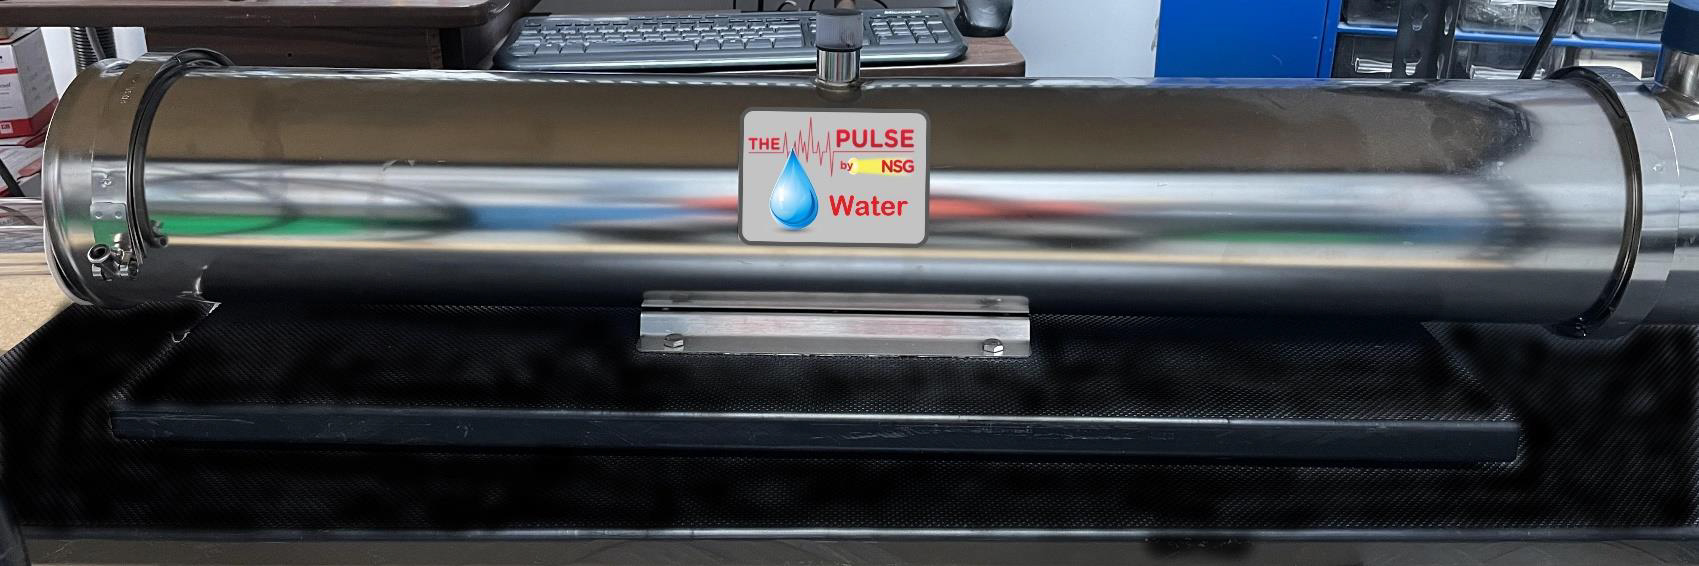 Destroy pathogens in your water supply with The PULSE Water Treatment